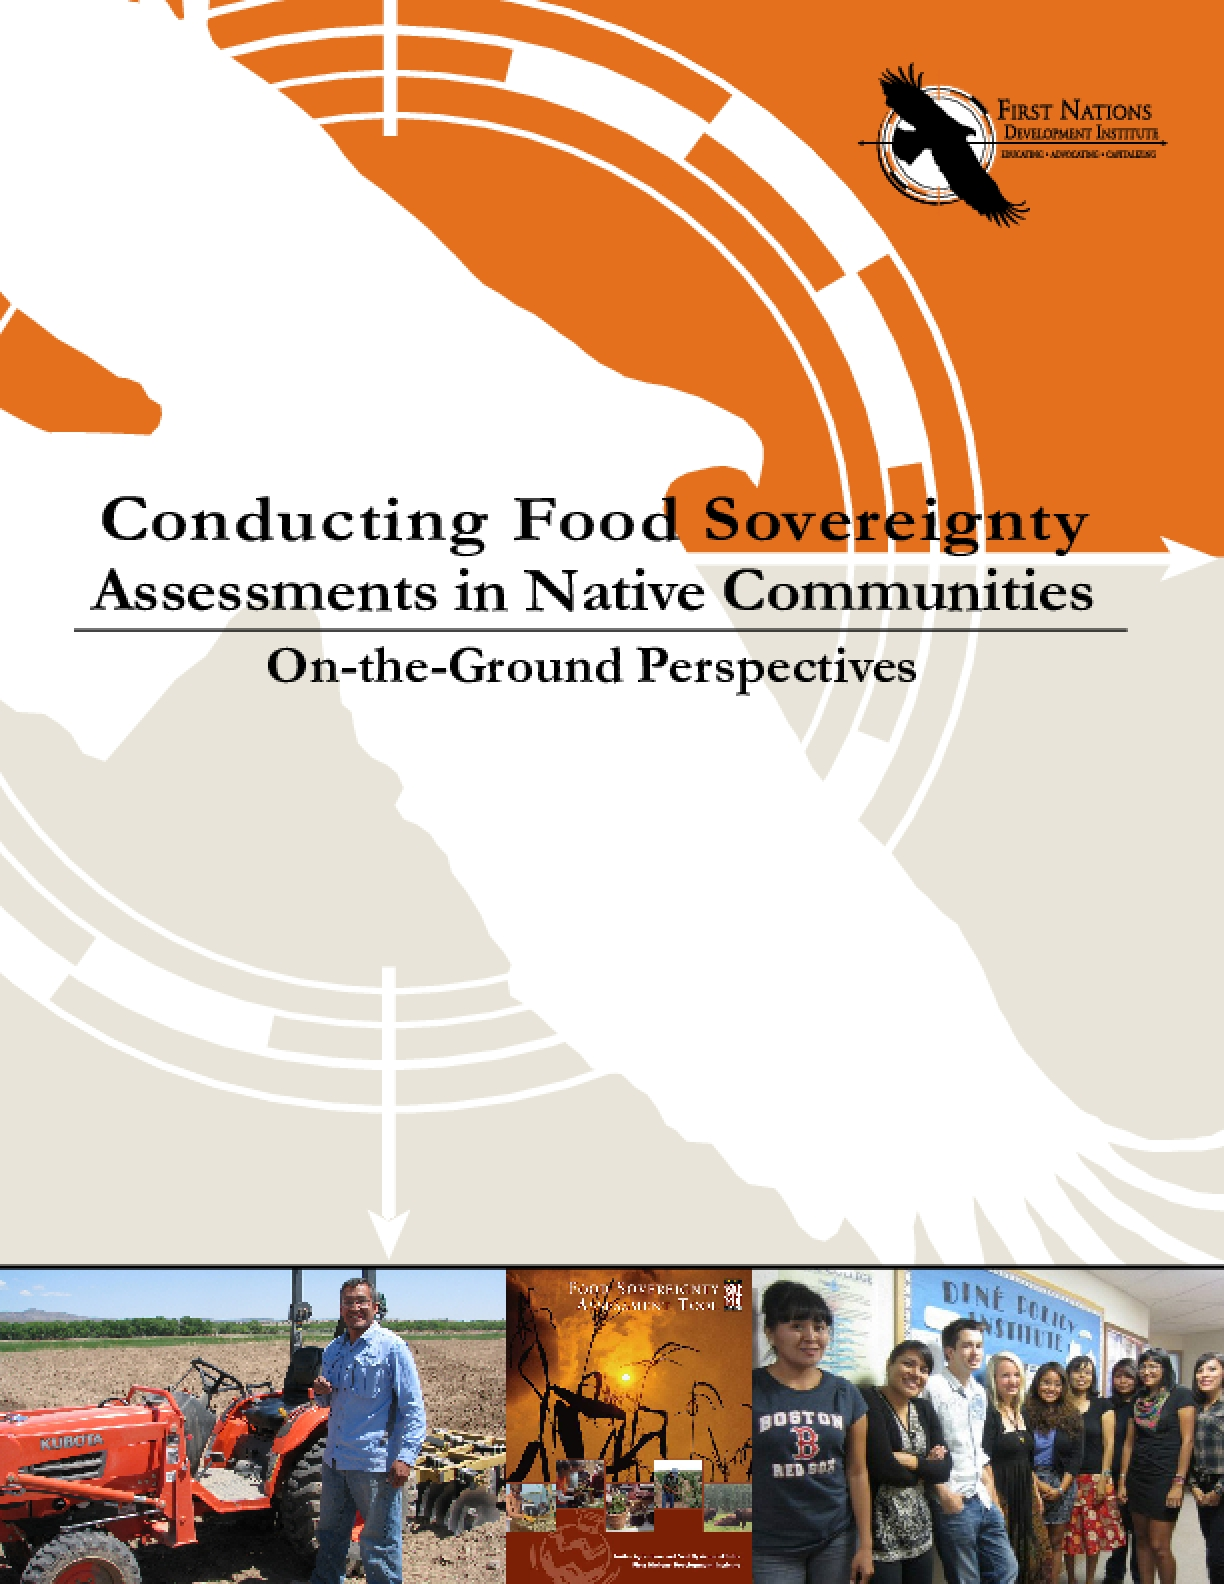 Conducting Food Sovereignty Assessments in Native Communities: On-the-Ground Perspectives